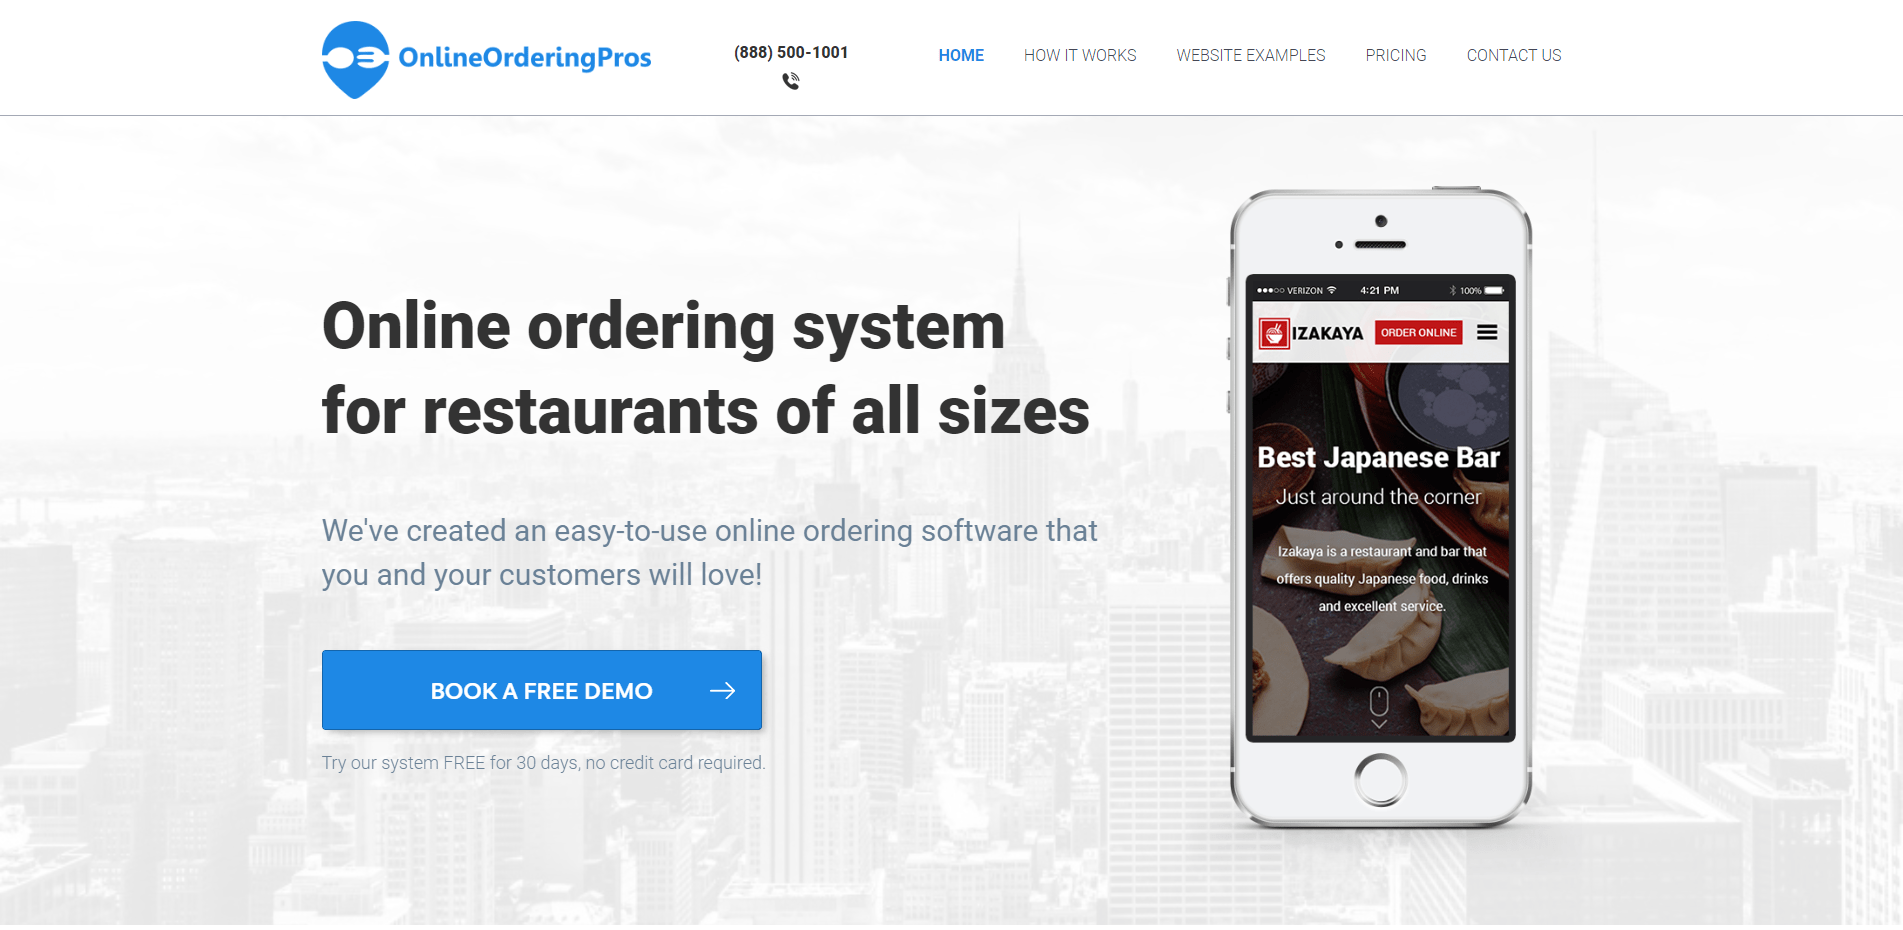 Online Ordering Pros